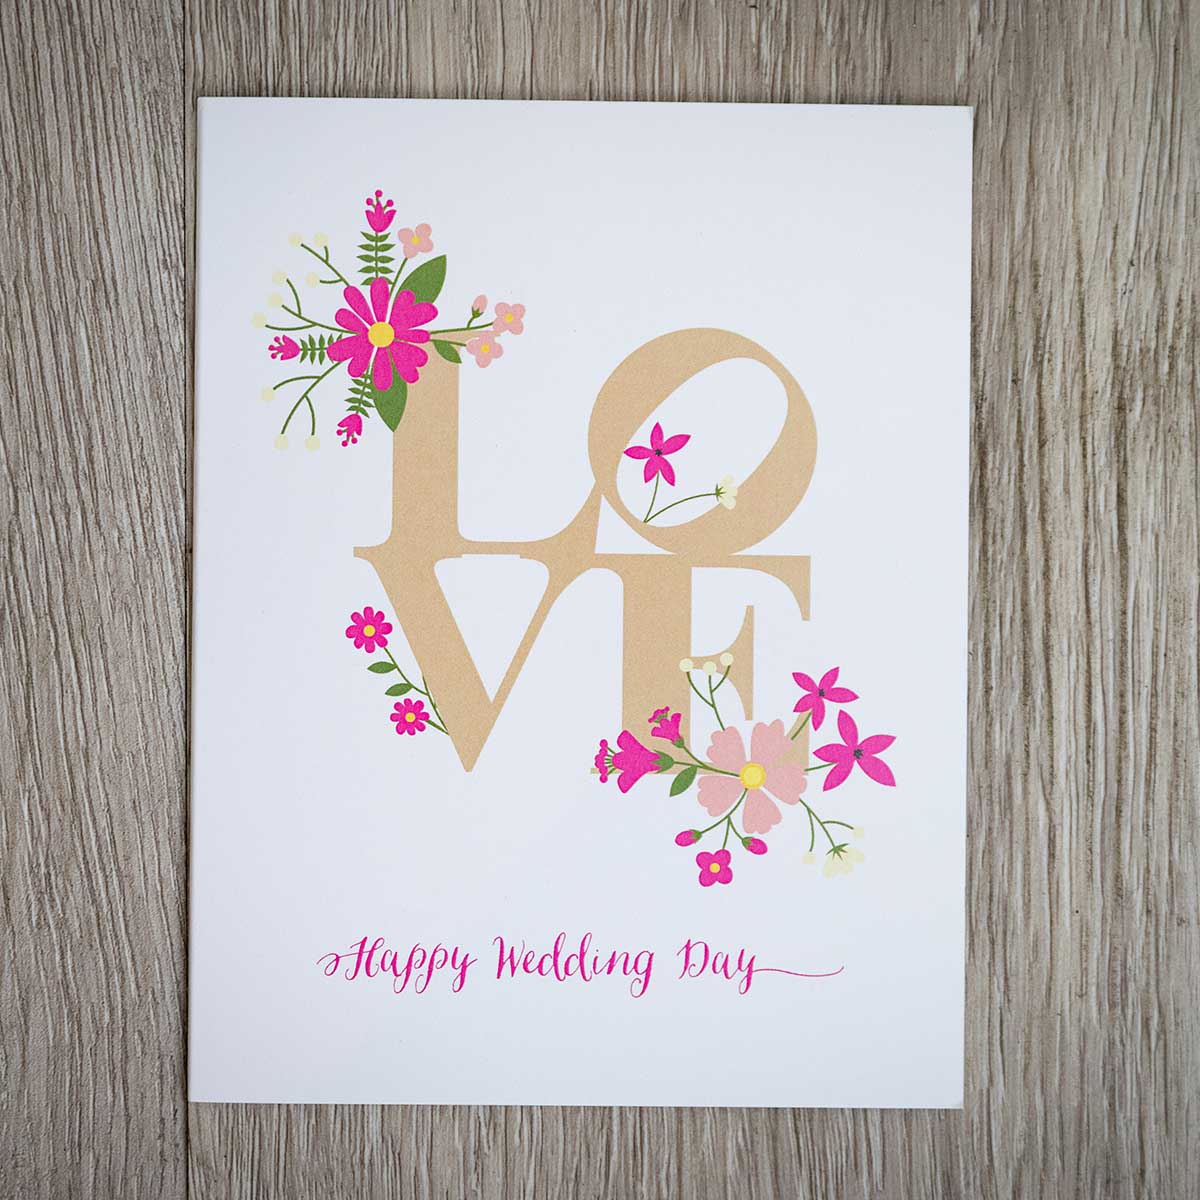 Happy Wedding Day! Best Wishes for the Bride & Groom. Free ... |Happy Wedding Day